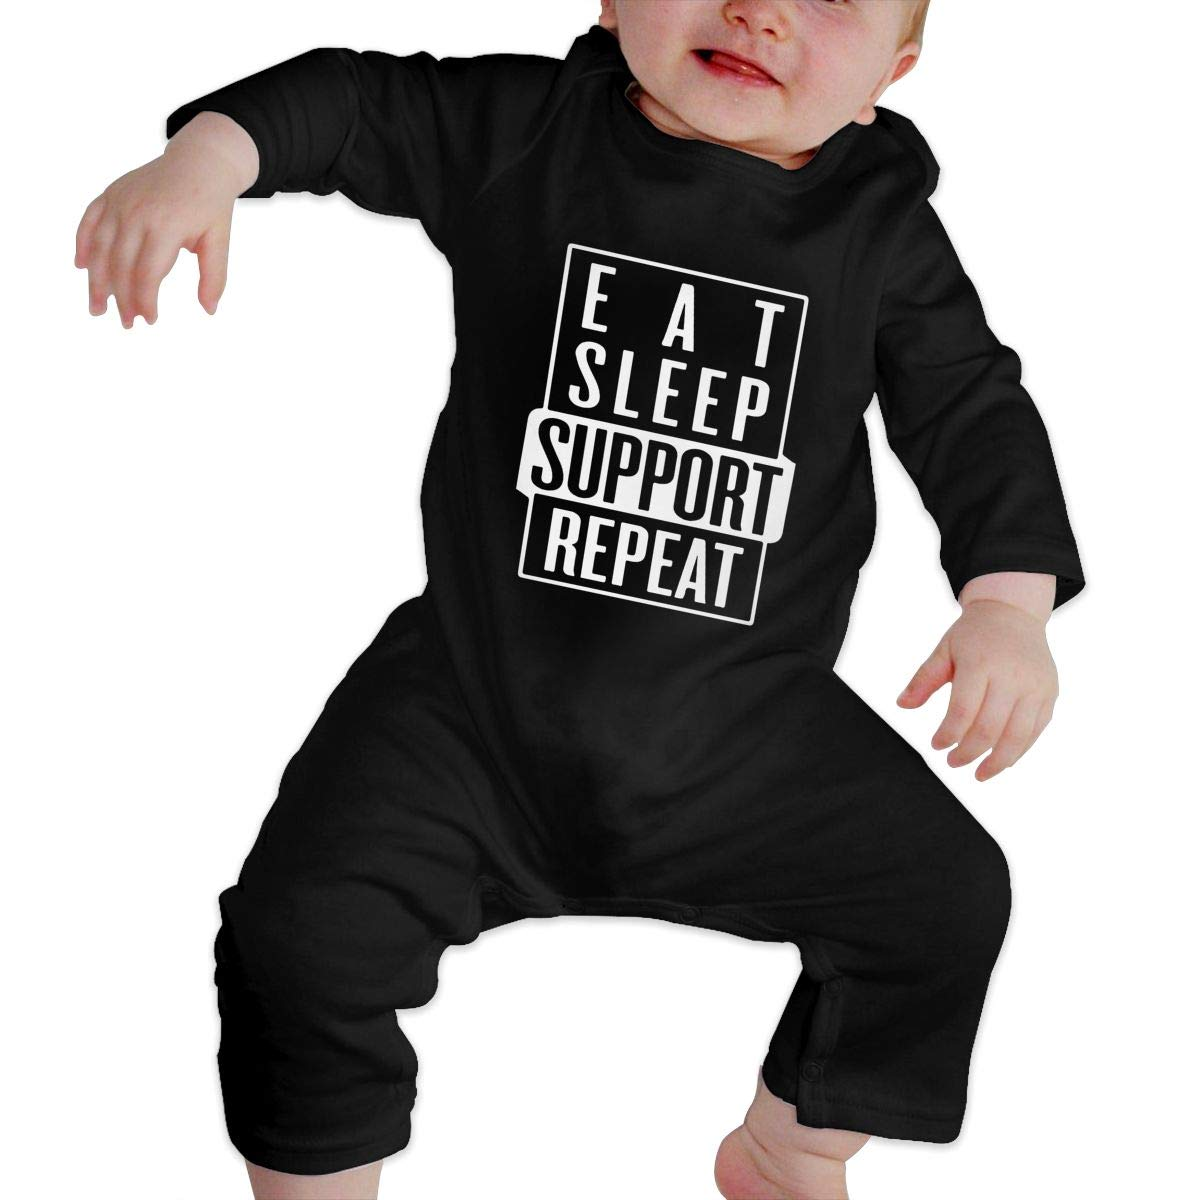 Suit 6-24 Months Q64 Newborn Round Collar Eat Sleep Support Repeat Long Sleeve Playsuit 100/% Cotton